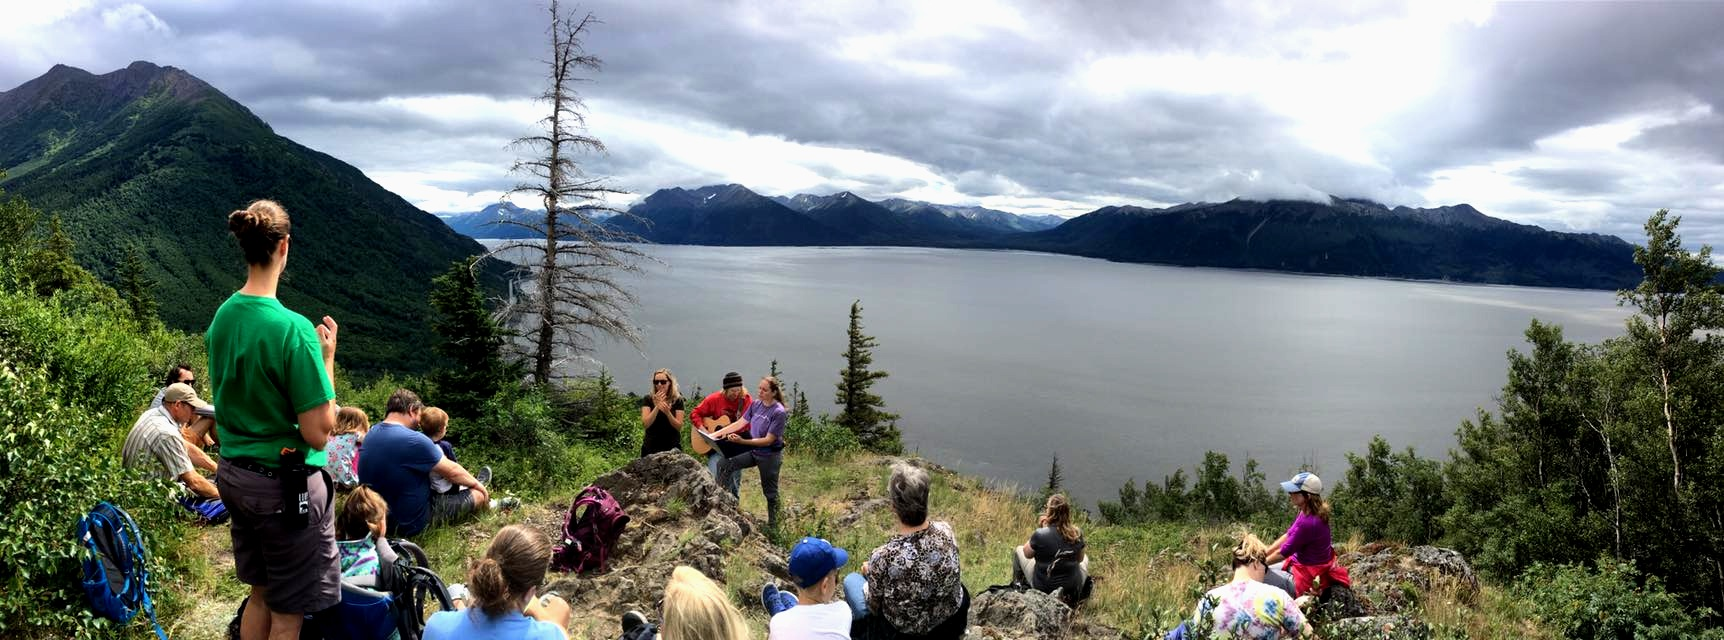 cool+panorama+of+outside+with+oceans+and+mountains+at+retreat.jpg